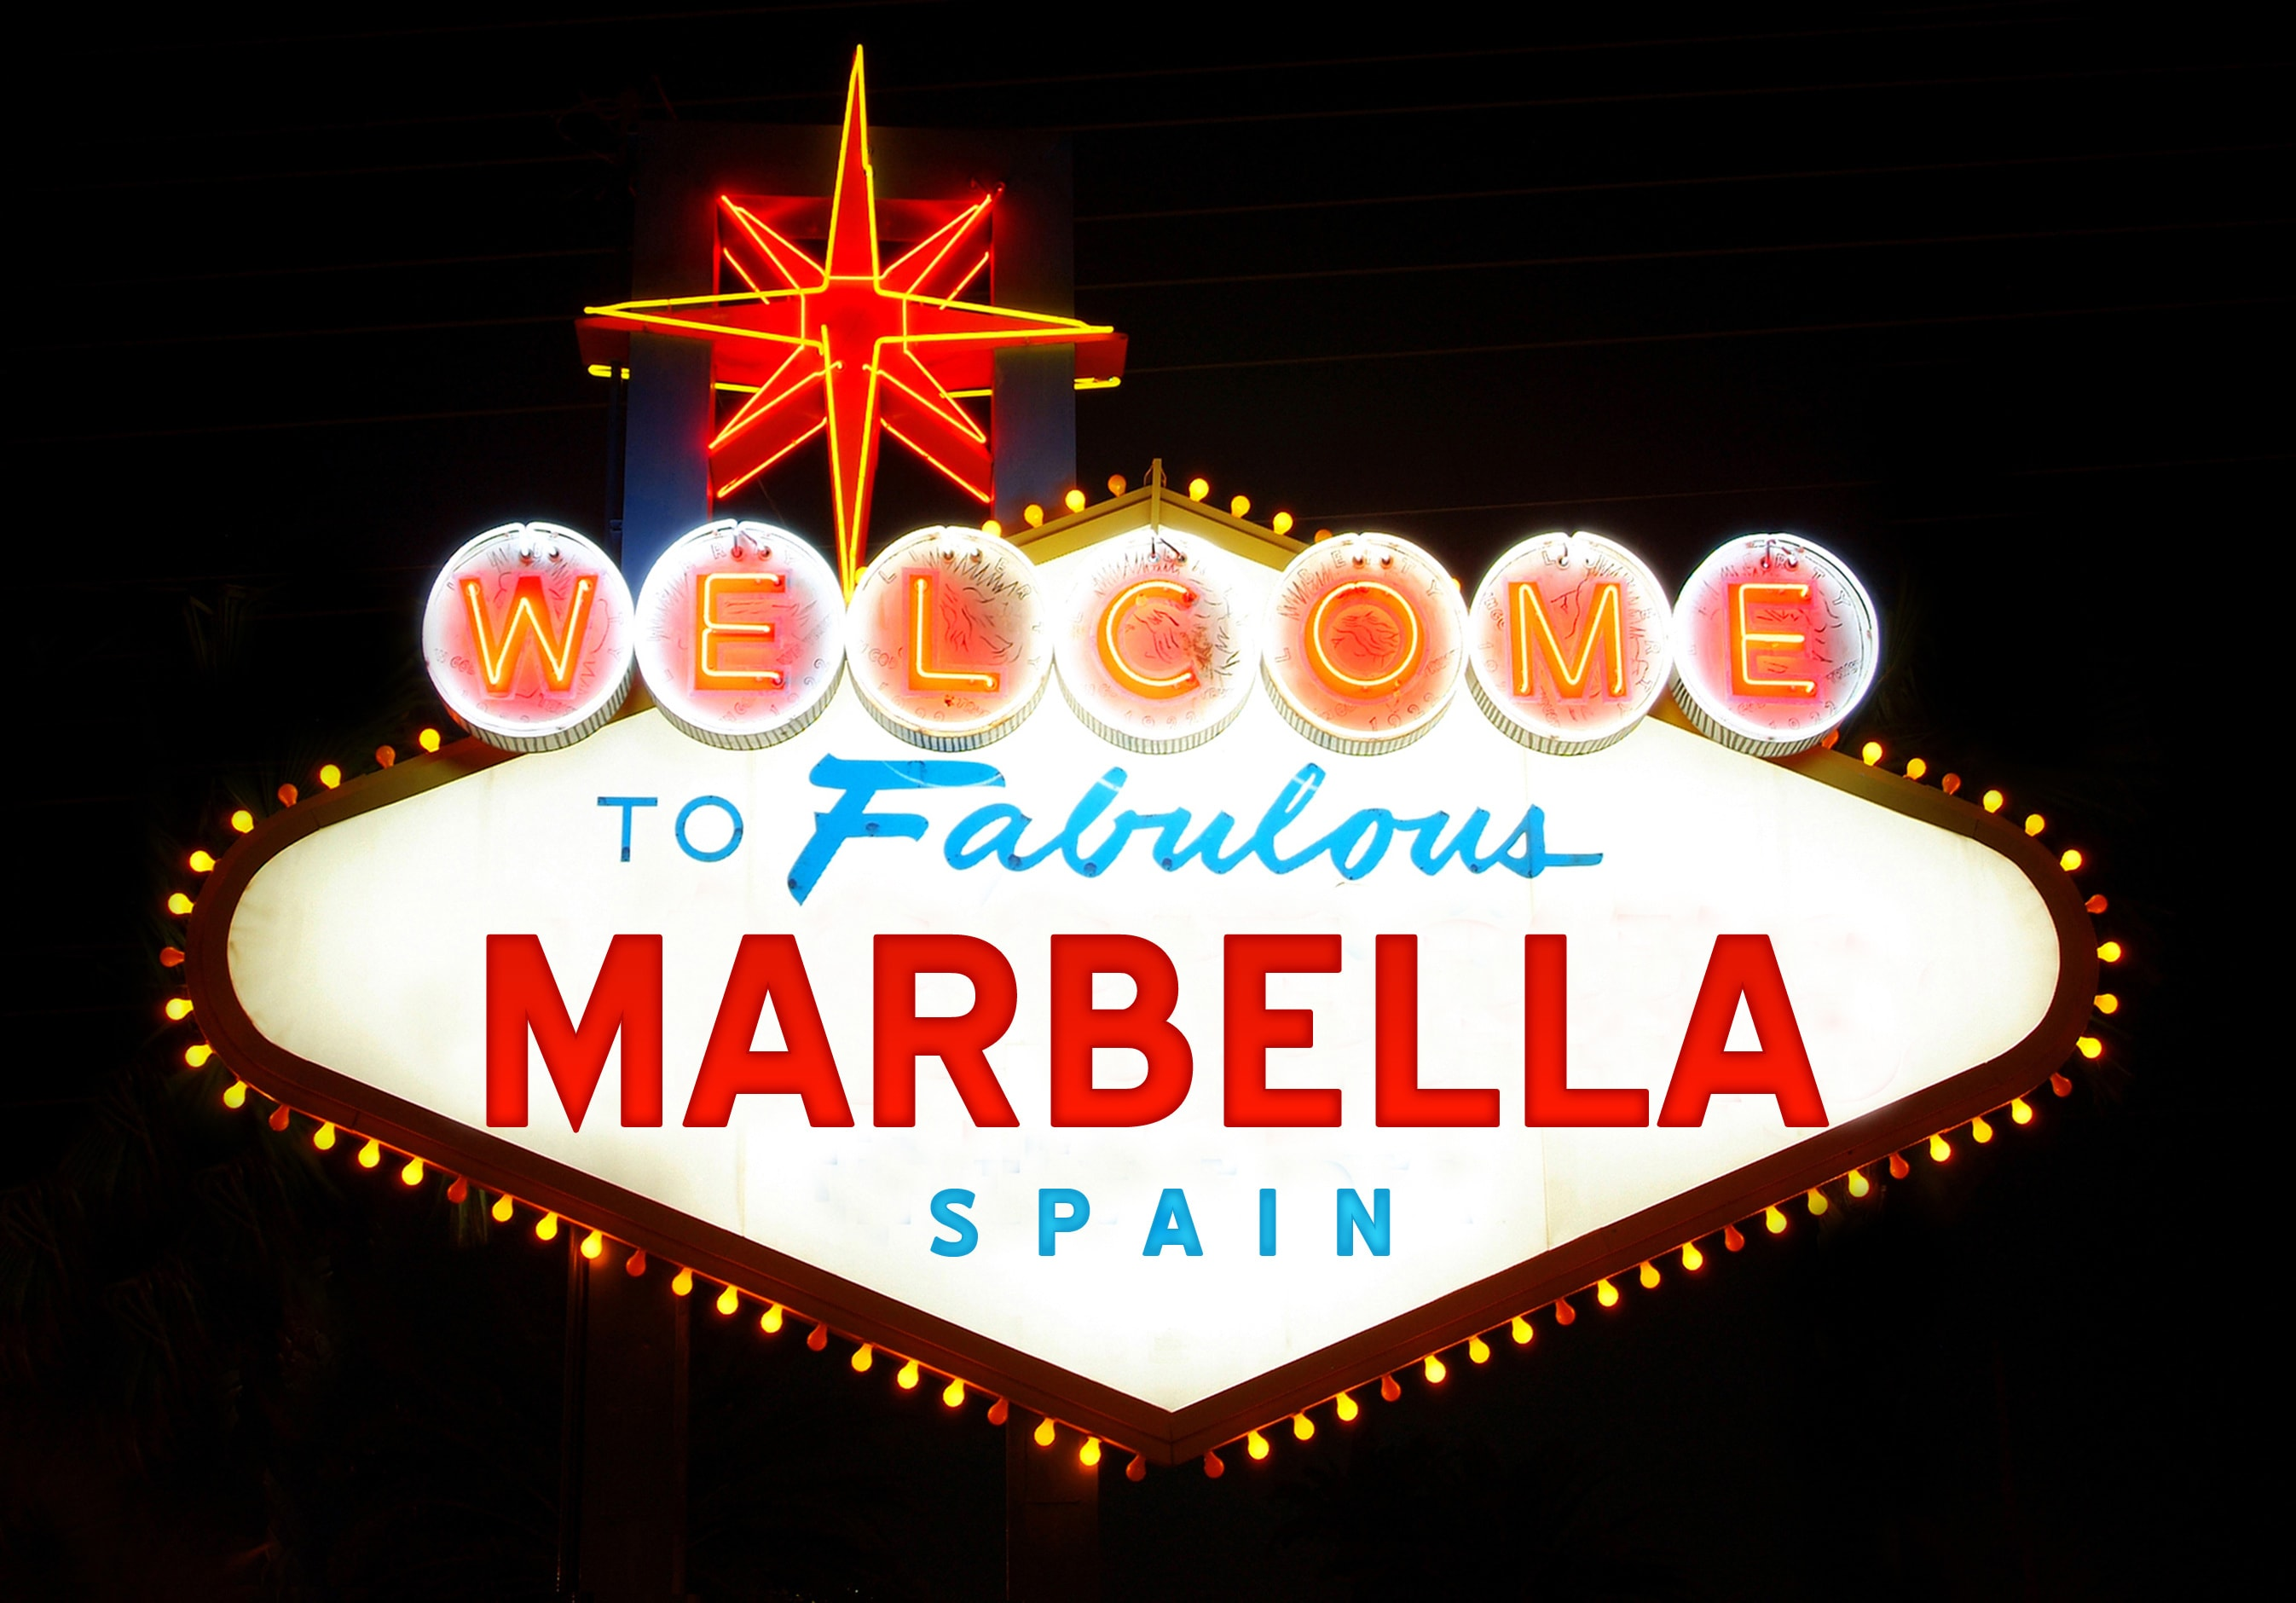 Welcome to Fabulous Marbella Spain